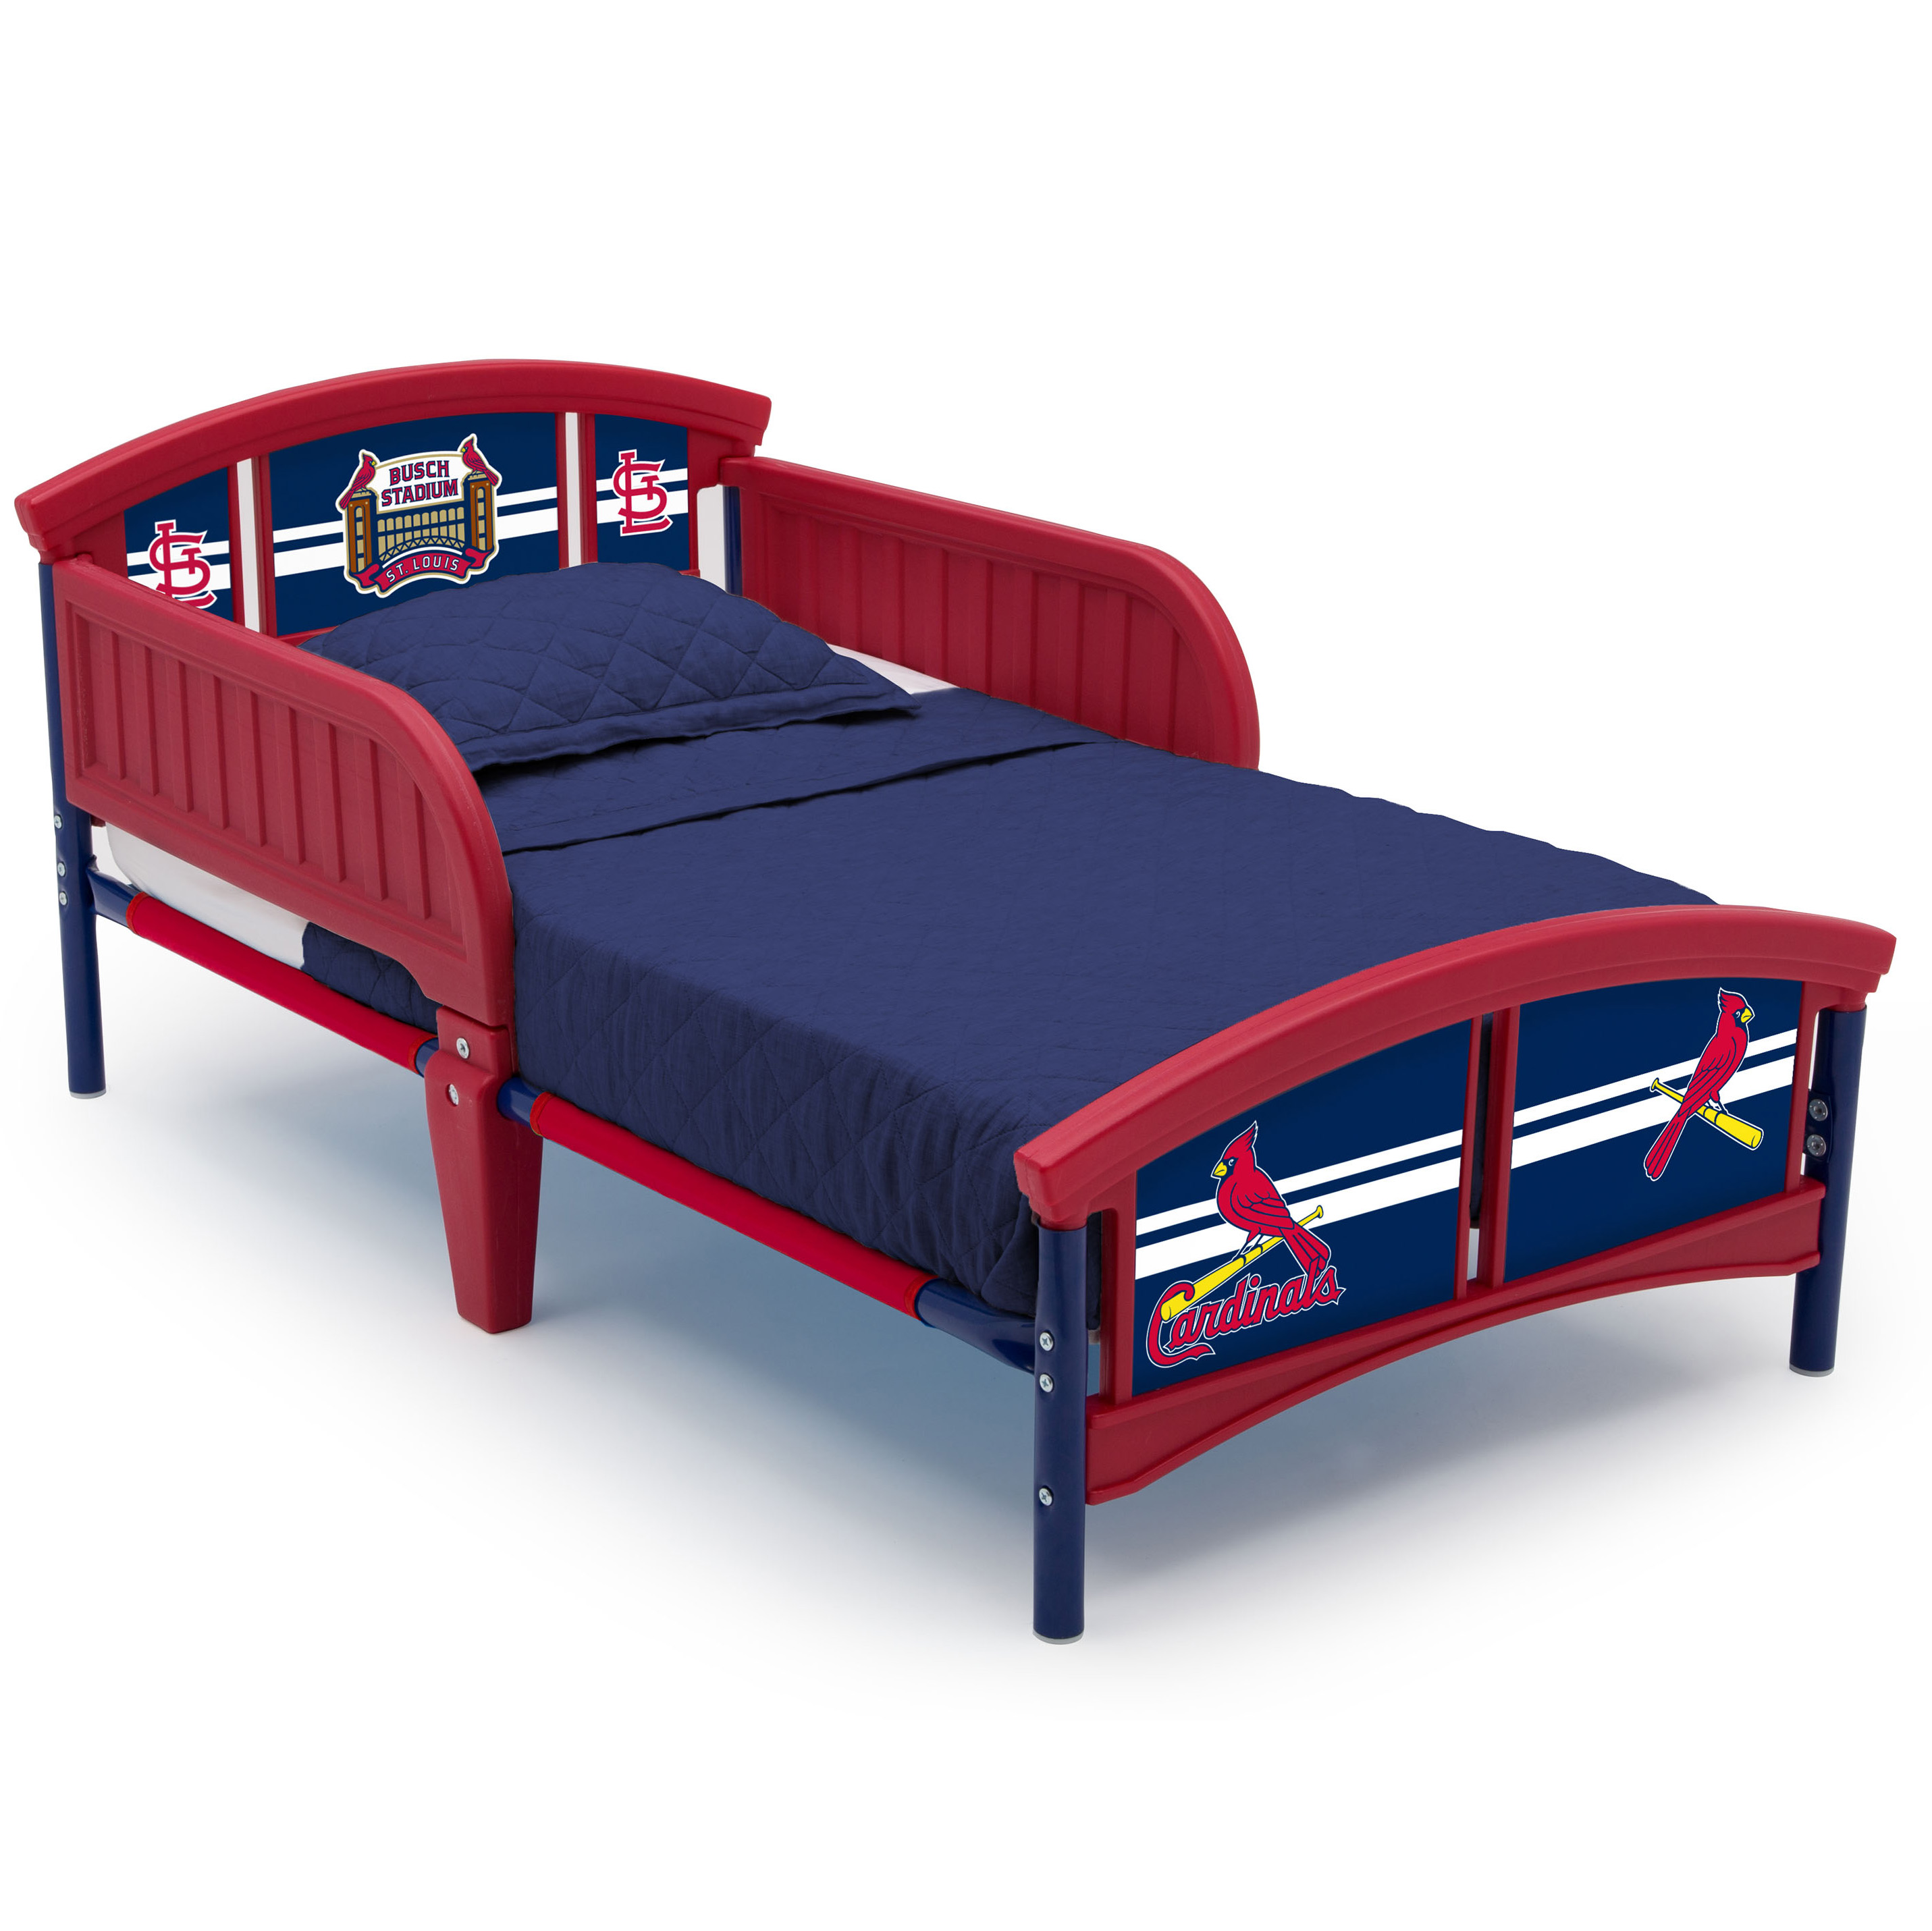 MLB St. Louis Cardinals Plastic Toddler Bed by Delta Children